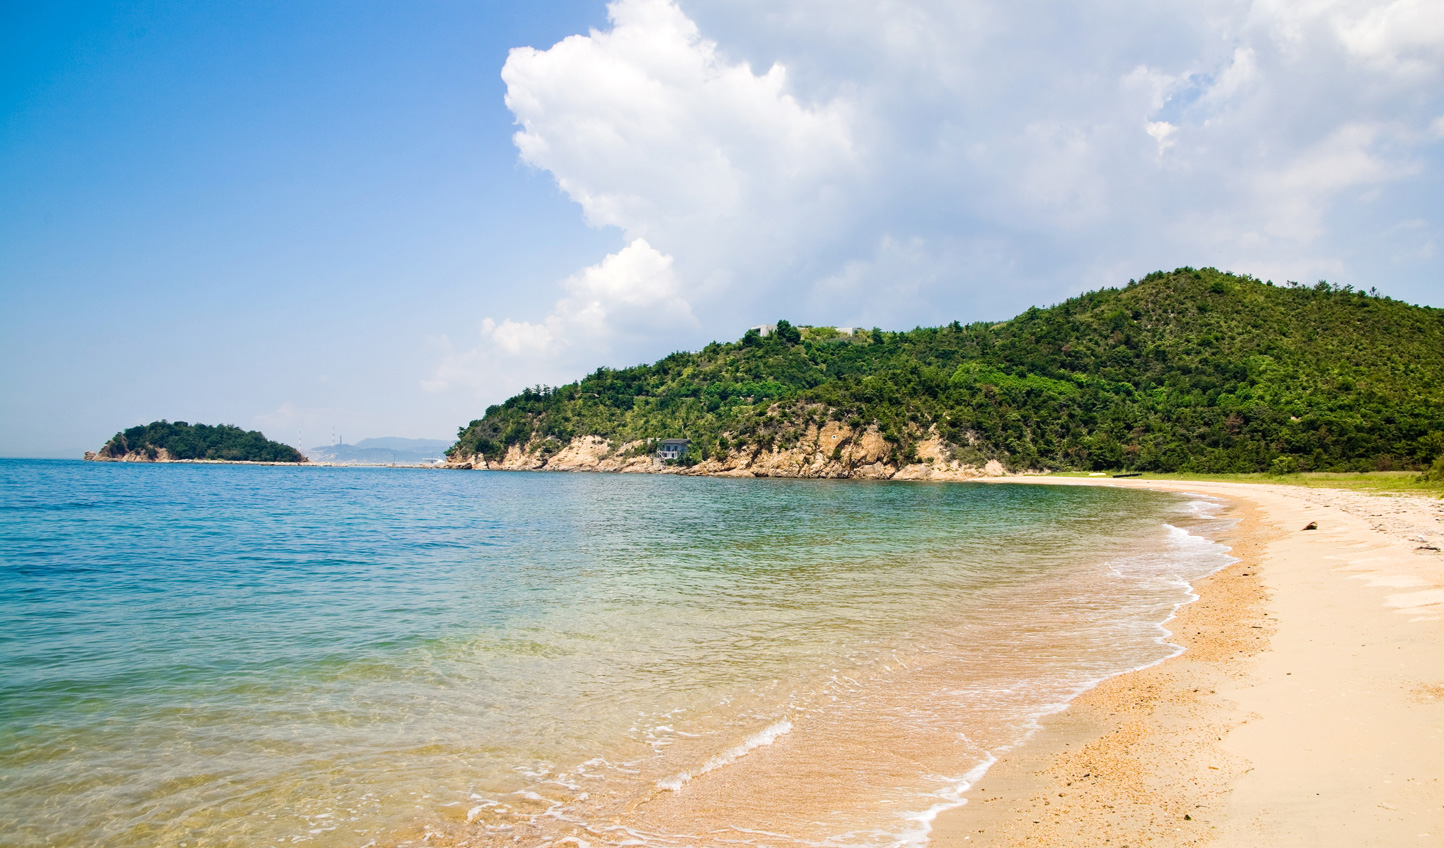 End your stay on the quiet beaches of Naoshima